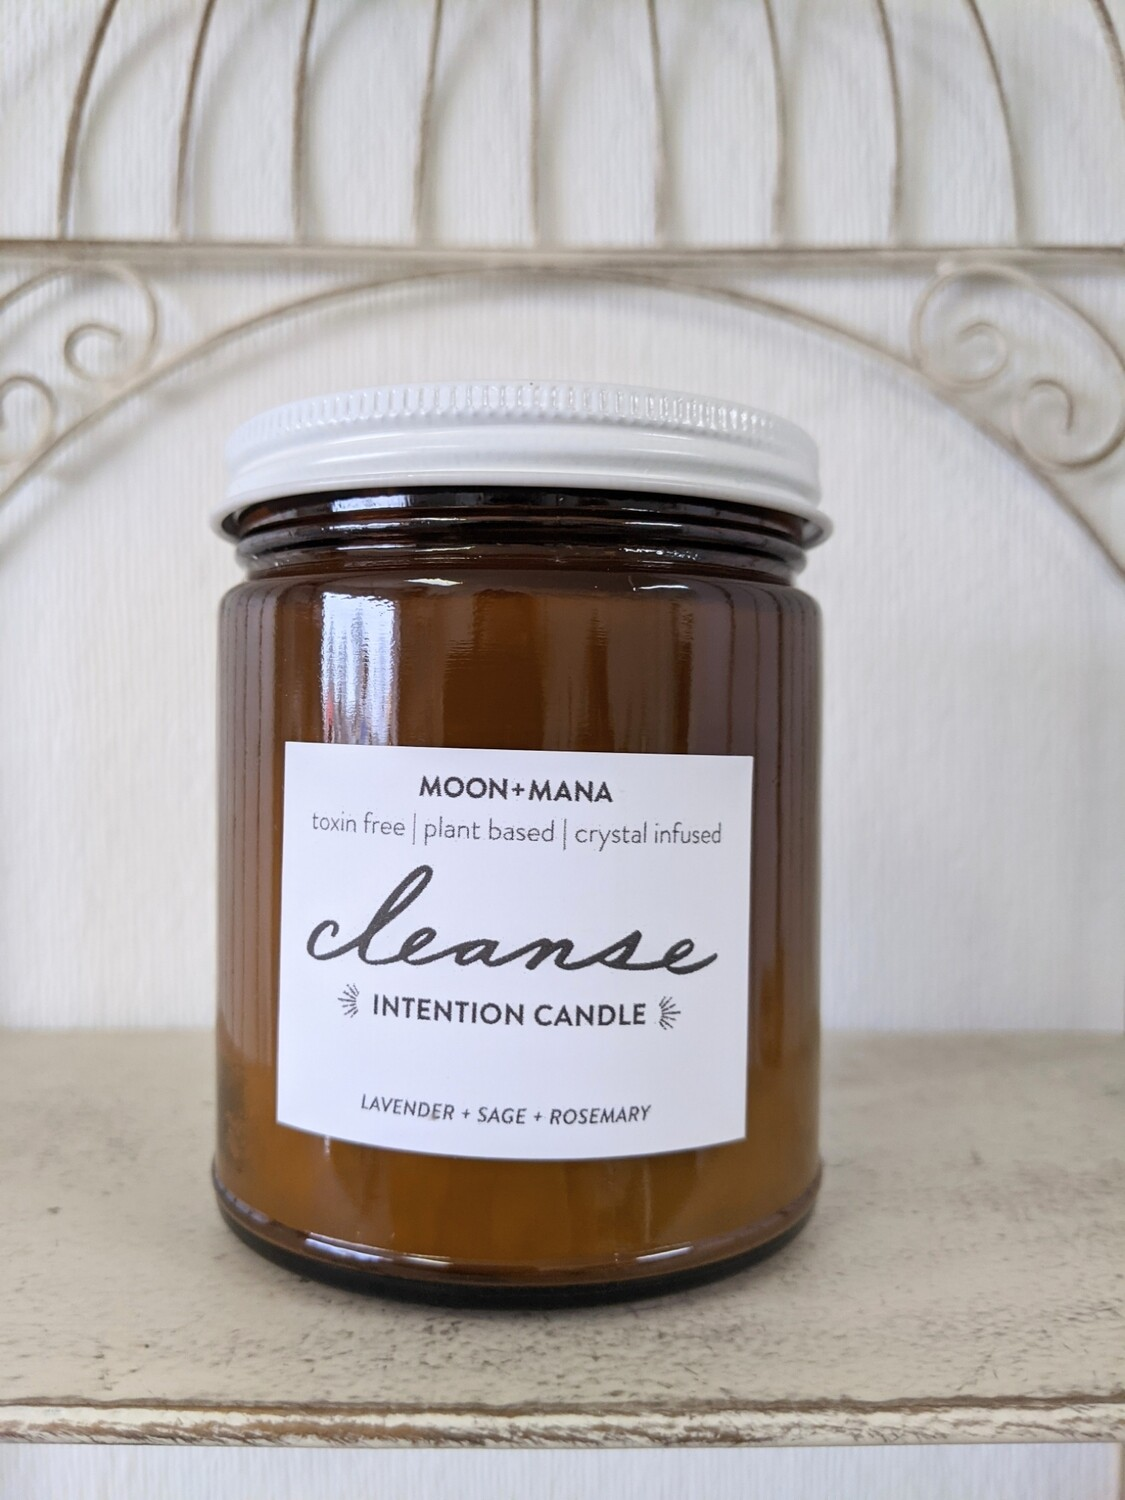 Moon & Mana Intention Candles - Cleanse 9oz